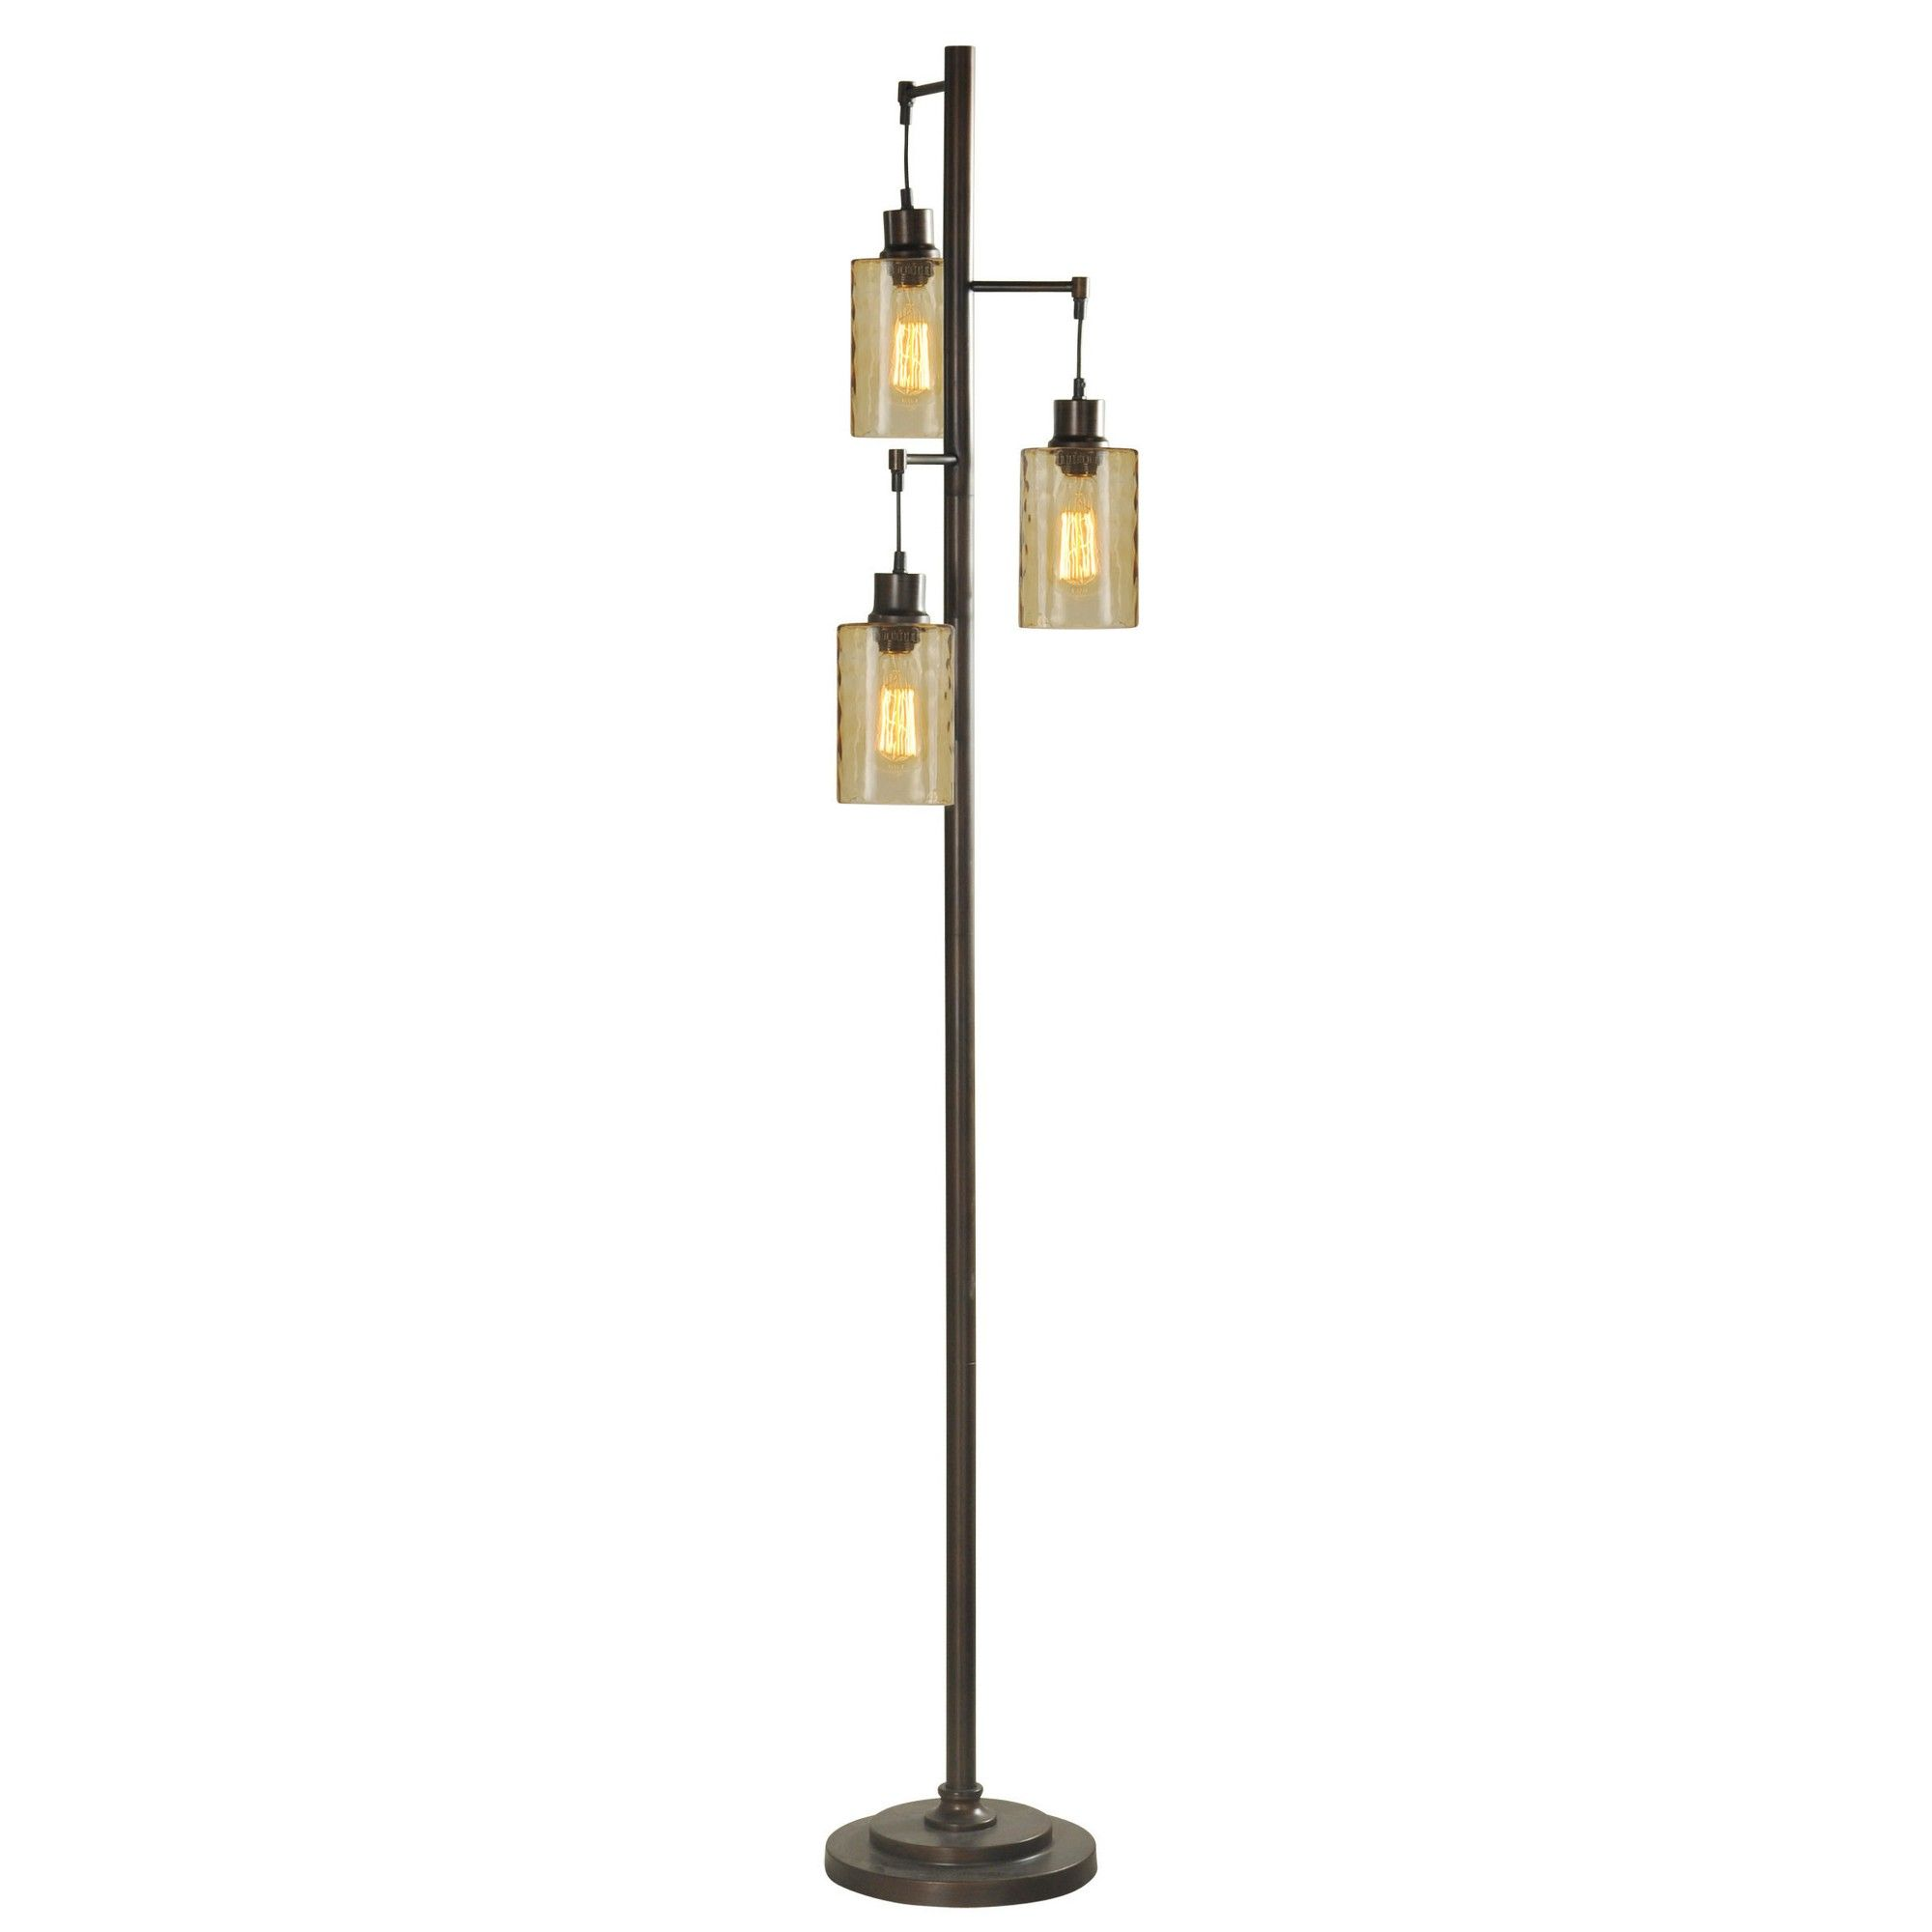 Stylecraft 3 Head Bronze Floor Lamp with Dimpled Glass